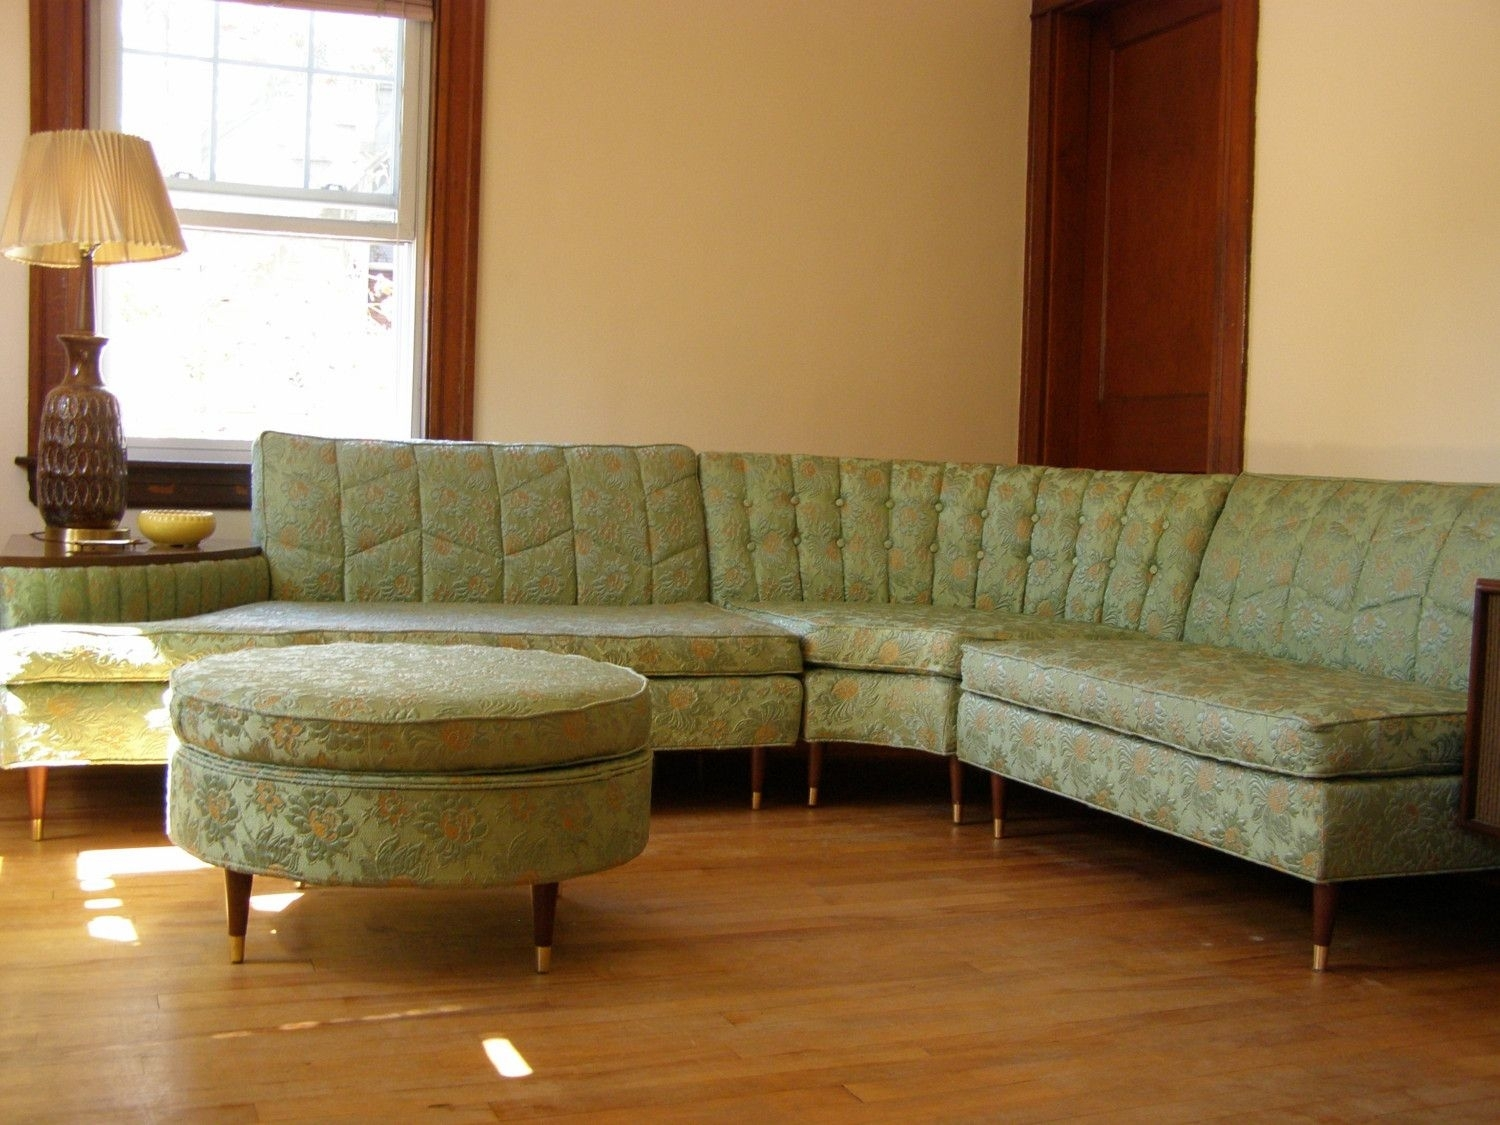 Retro Couches | New Years Sale Vintage Sectional Sofa With Built With Vintage Sectional Sofas (View 2 of 10)